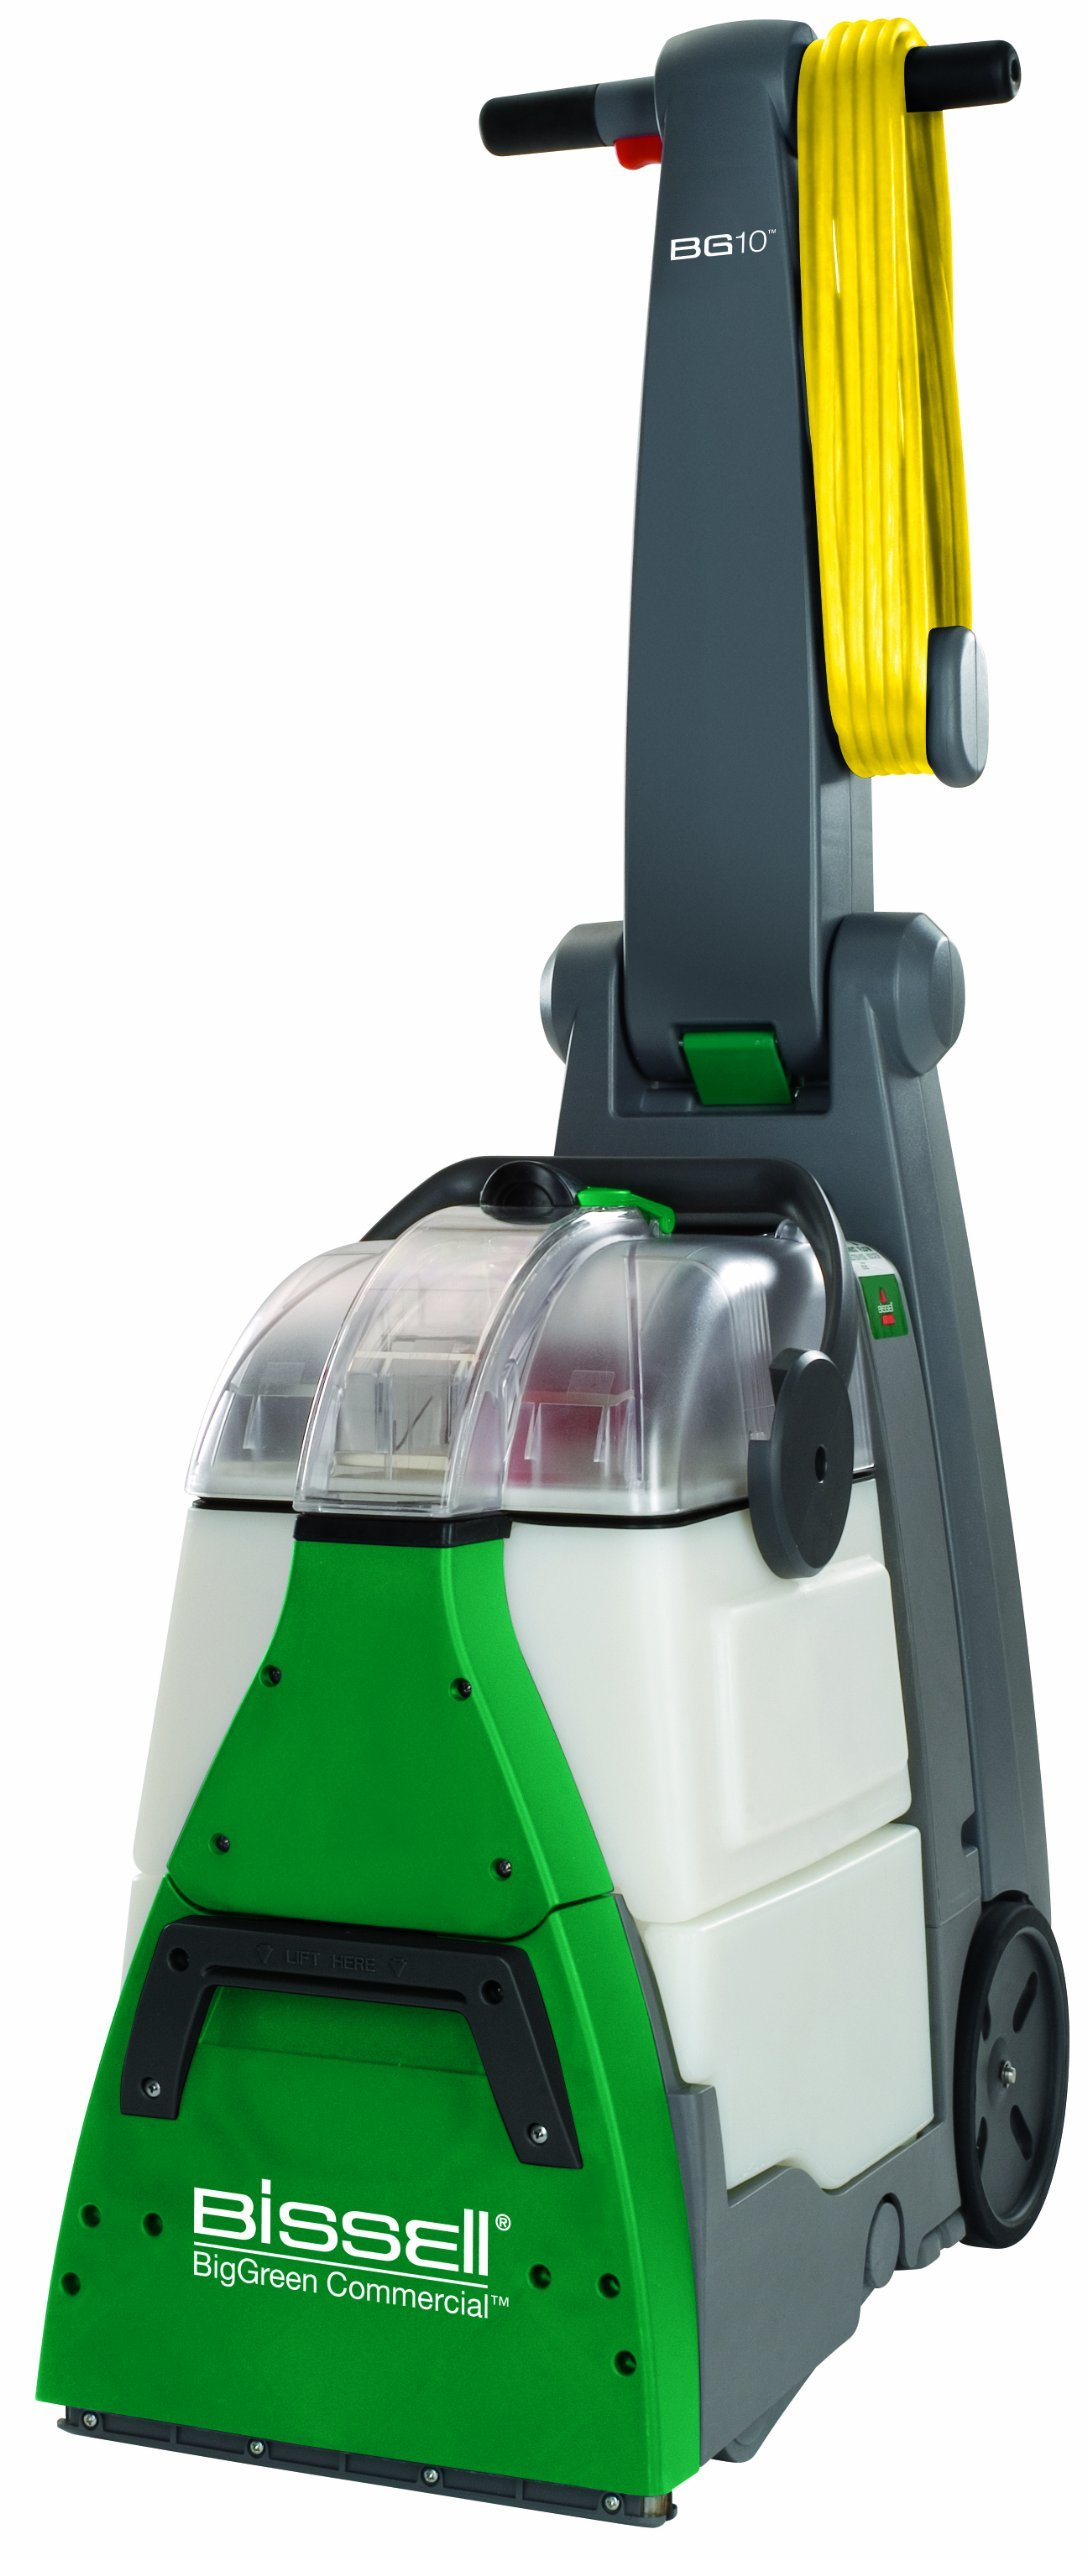 Bissell BigGreen Commercial BG10 Deep Cleaning 2 Motor Extractor Machine (Renewed) by Bissell Commercial